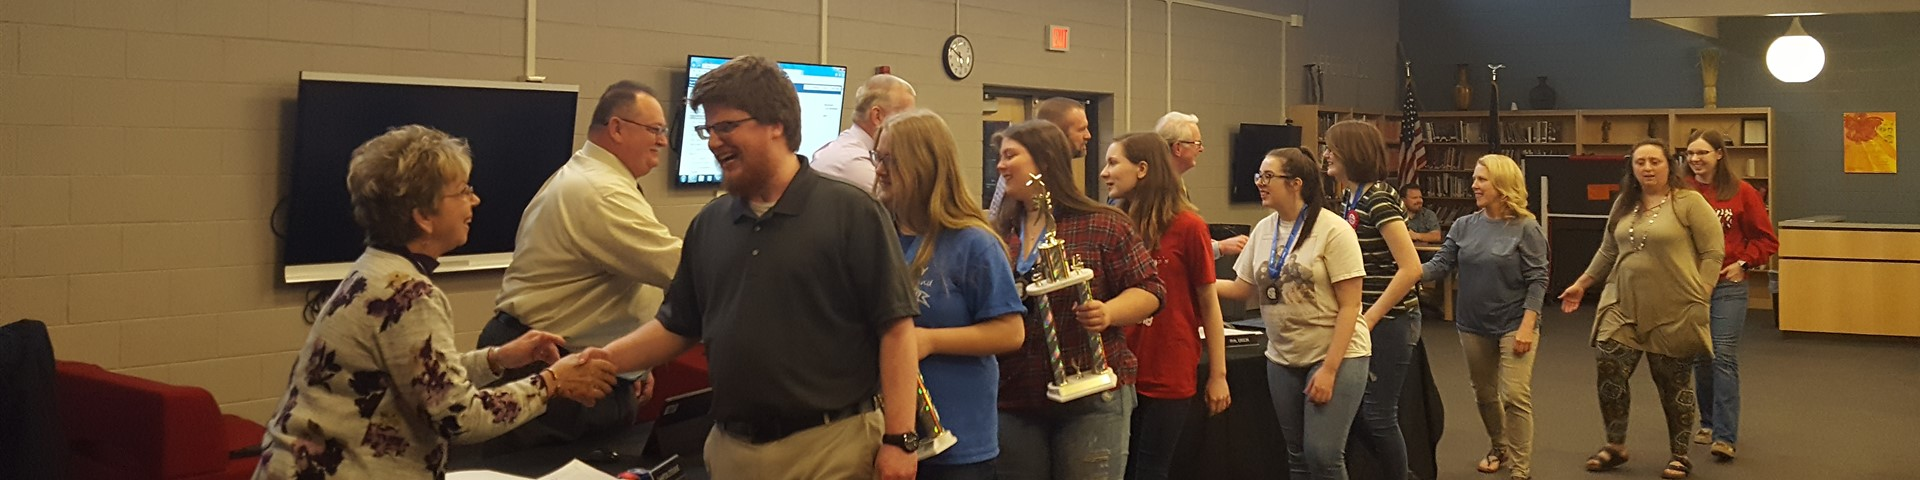 Odyssey of the Mind Recognized at the Board Meeting for Winning State Competition!